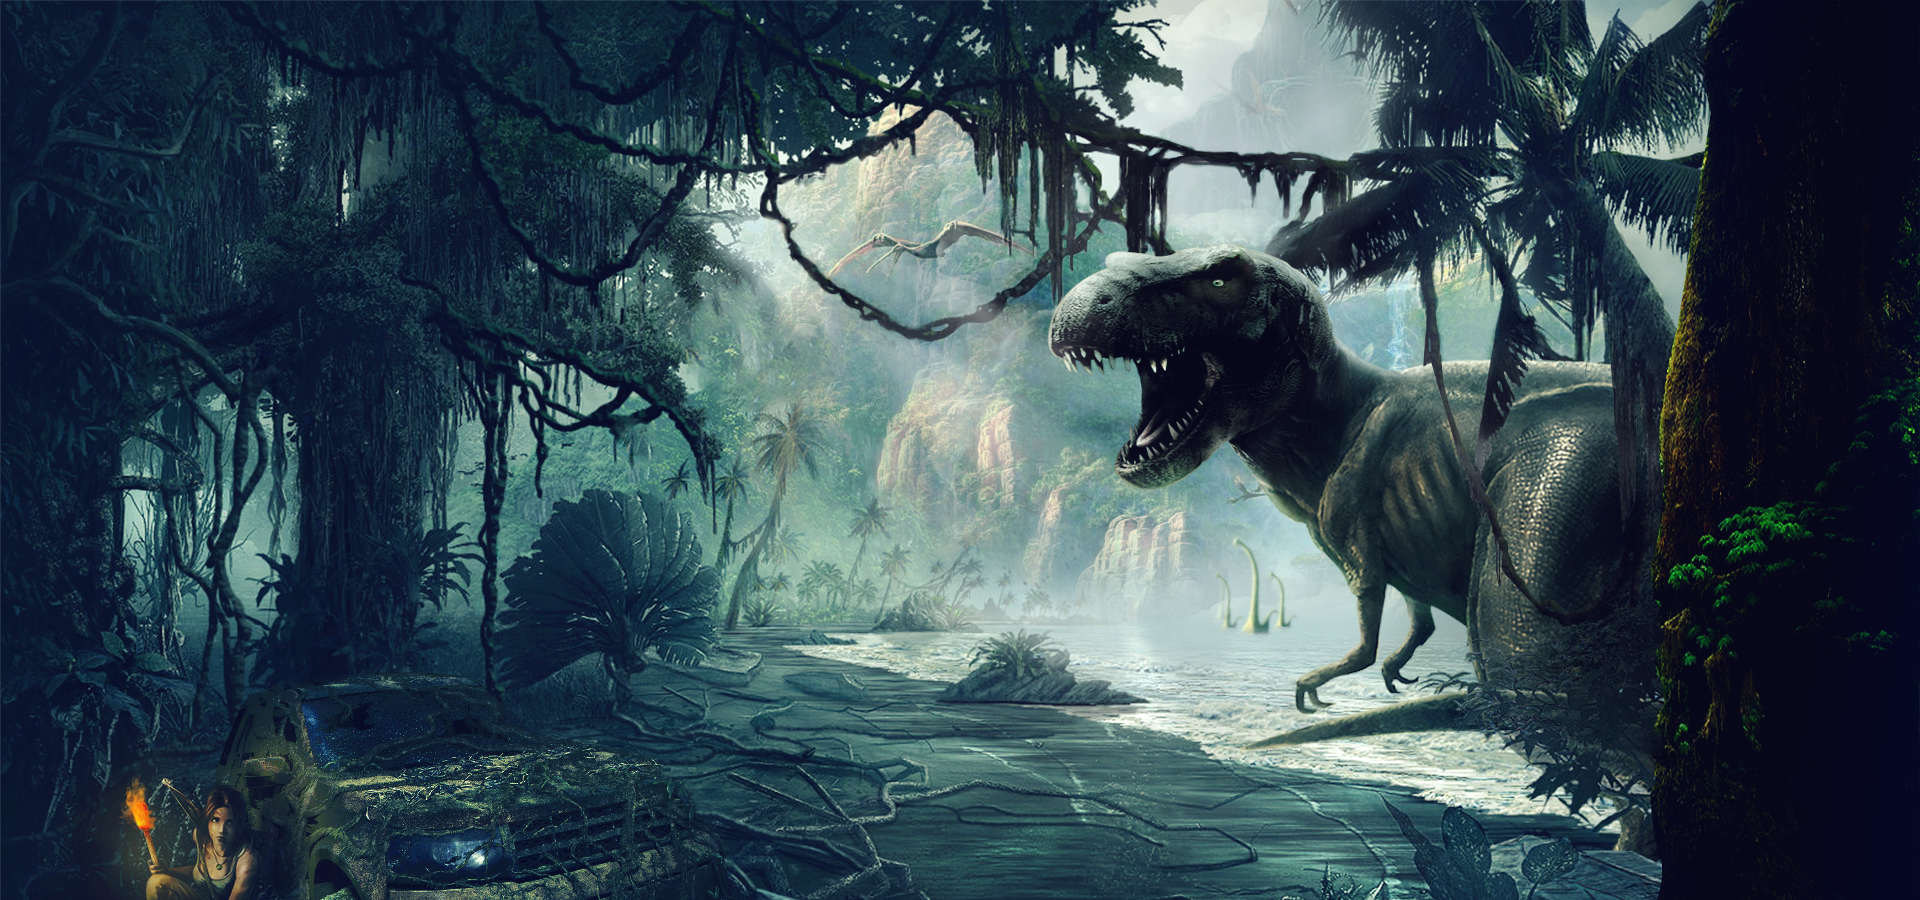 synthesize big dinosaurs into the forest  dinosaur